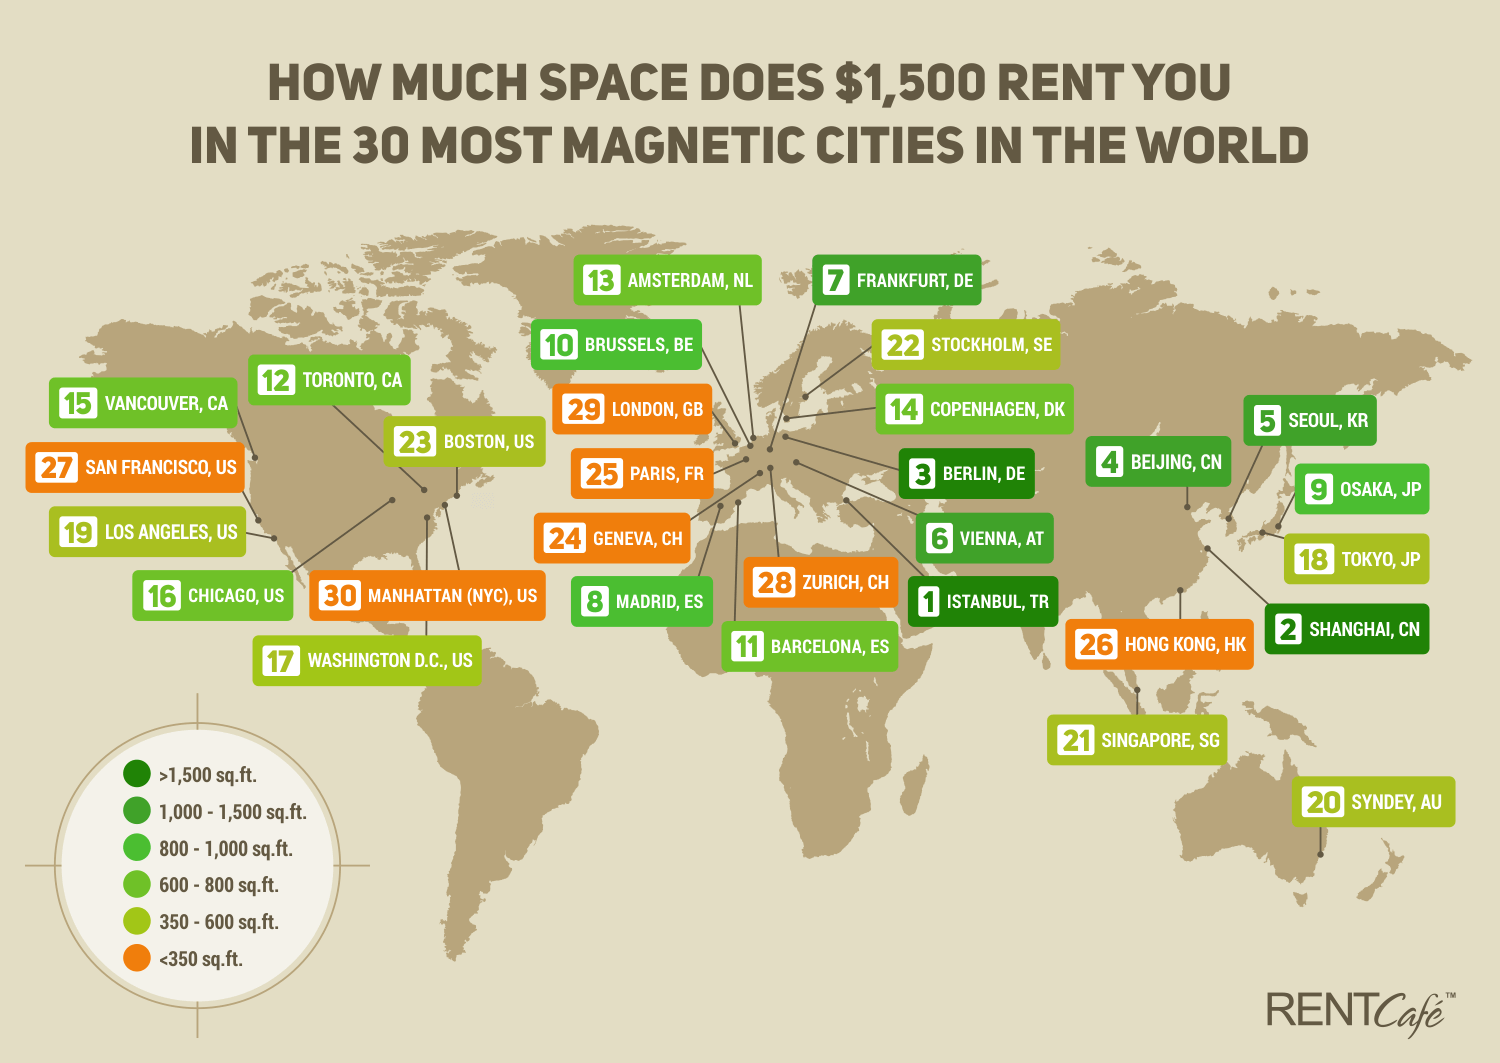 How much space can 1500 get you around the world rent blog london paris and the swiss beauties zurich and geneva offer under 350 sq ft for 1500month publicscrutiny Image collections